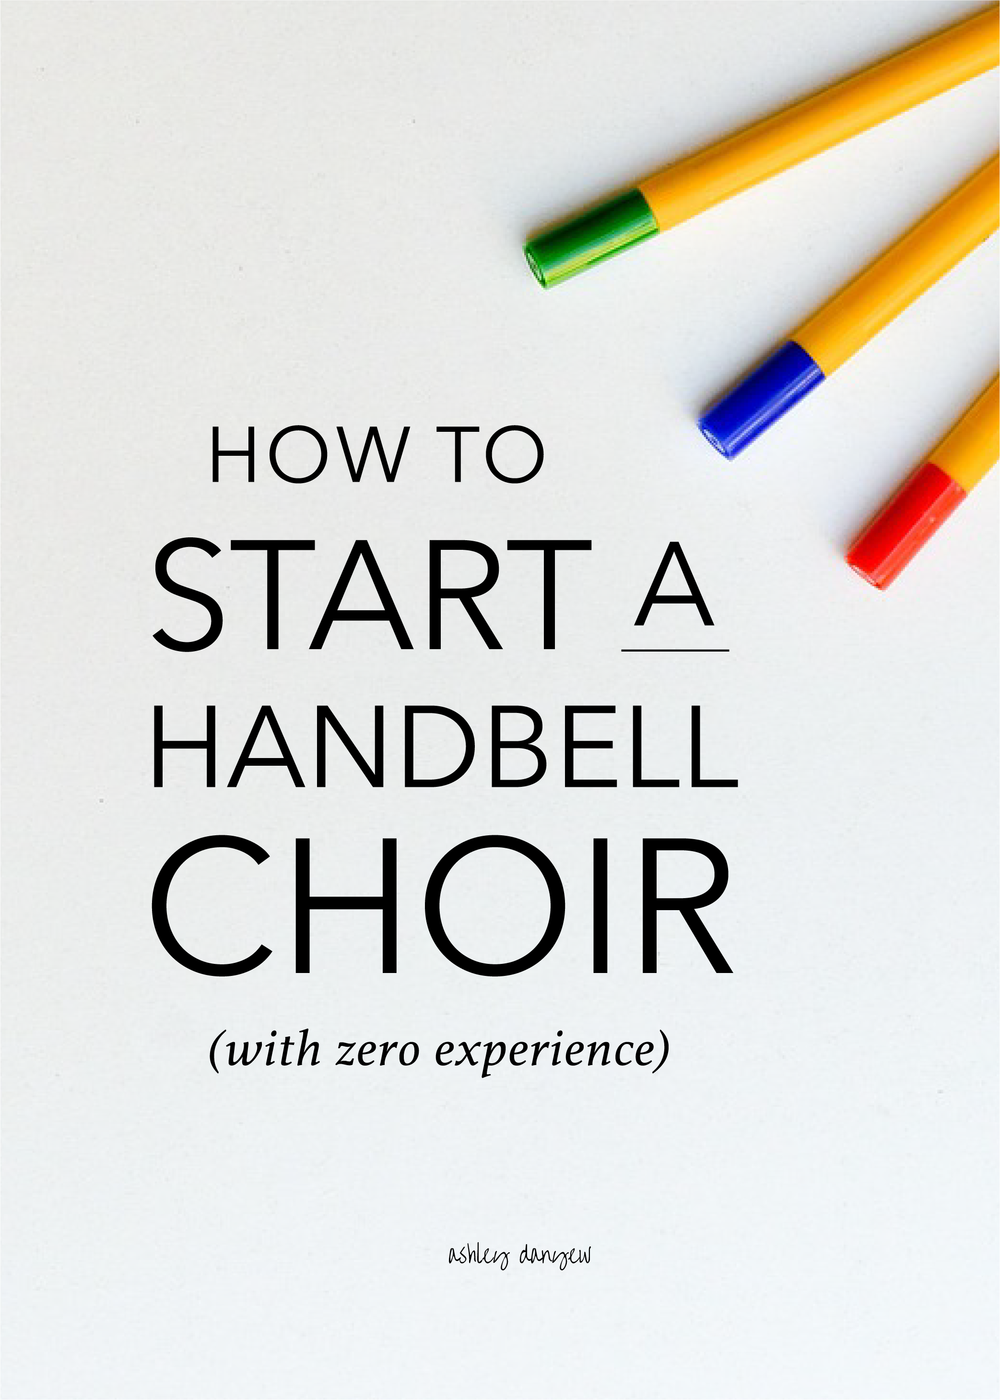 How to Start a Handbell Choir (with Zero Experience)